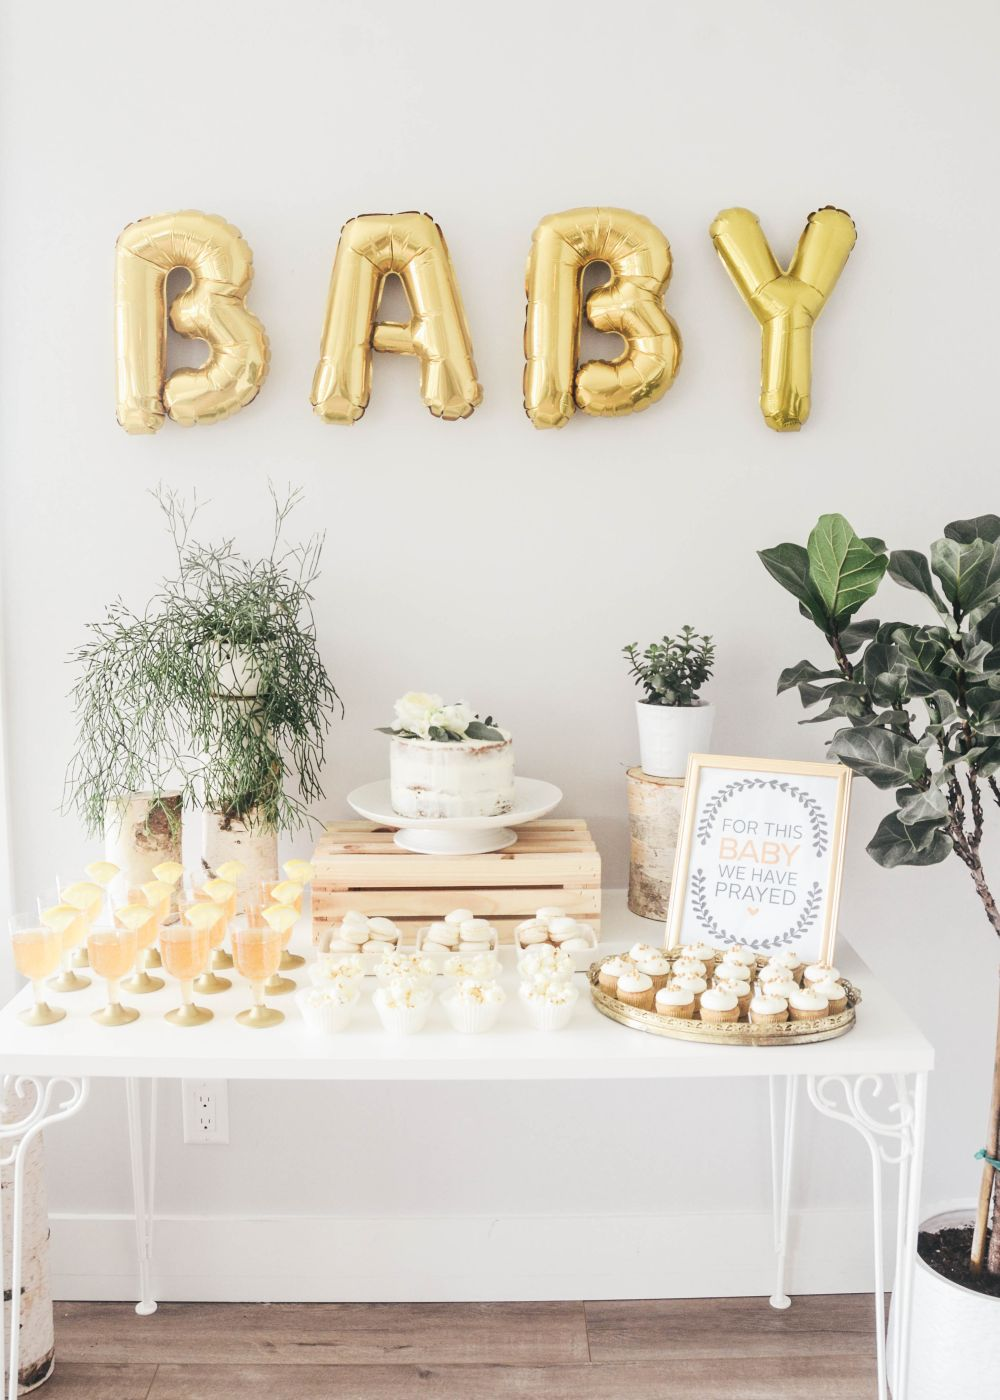 Baby Shower Room Set Up Ideas 15 Best Baby Shower Décor Ideas for a Memorable Celebration